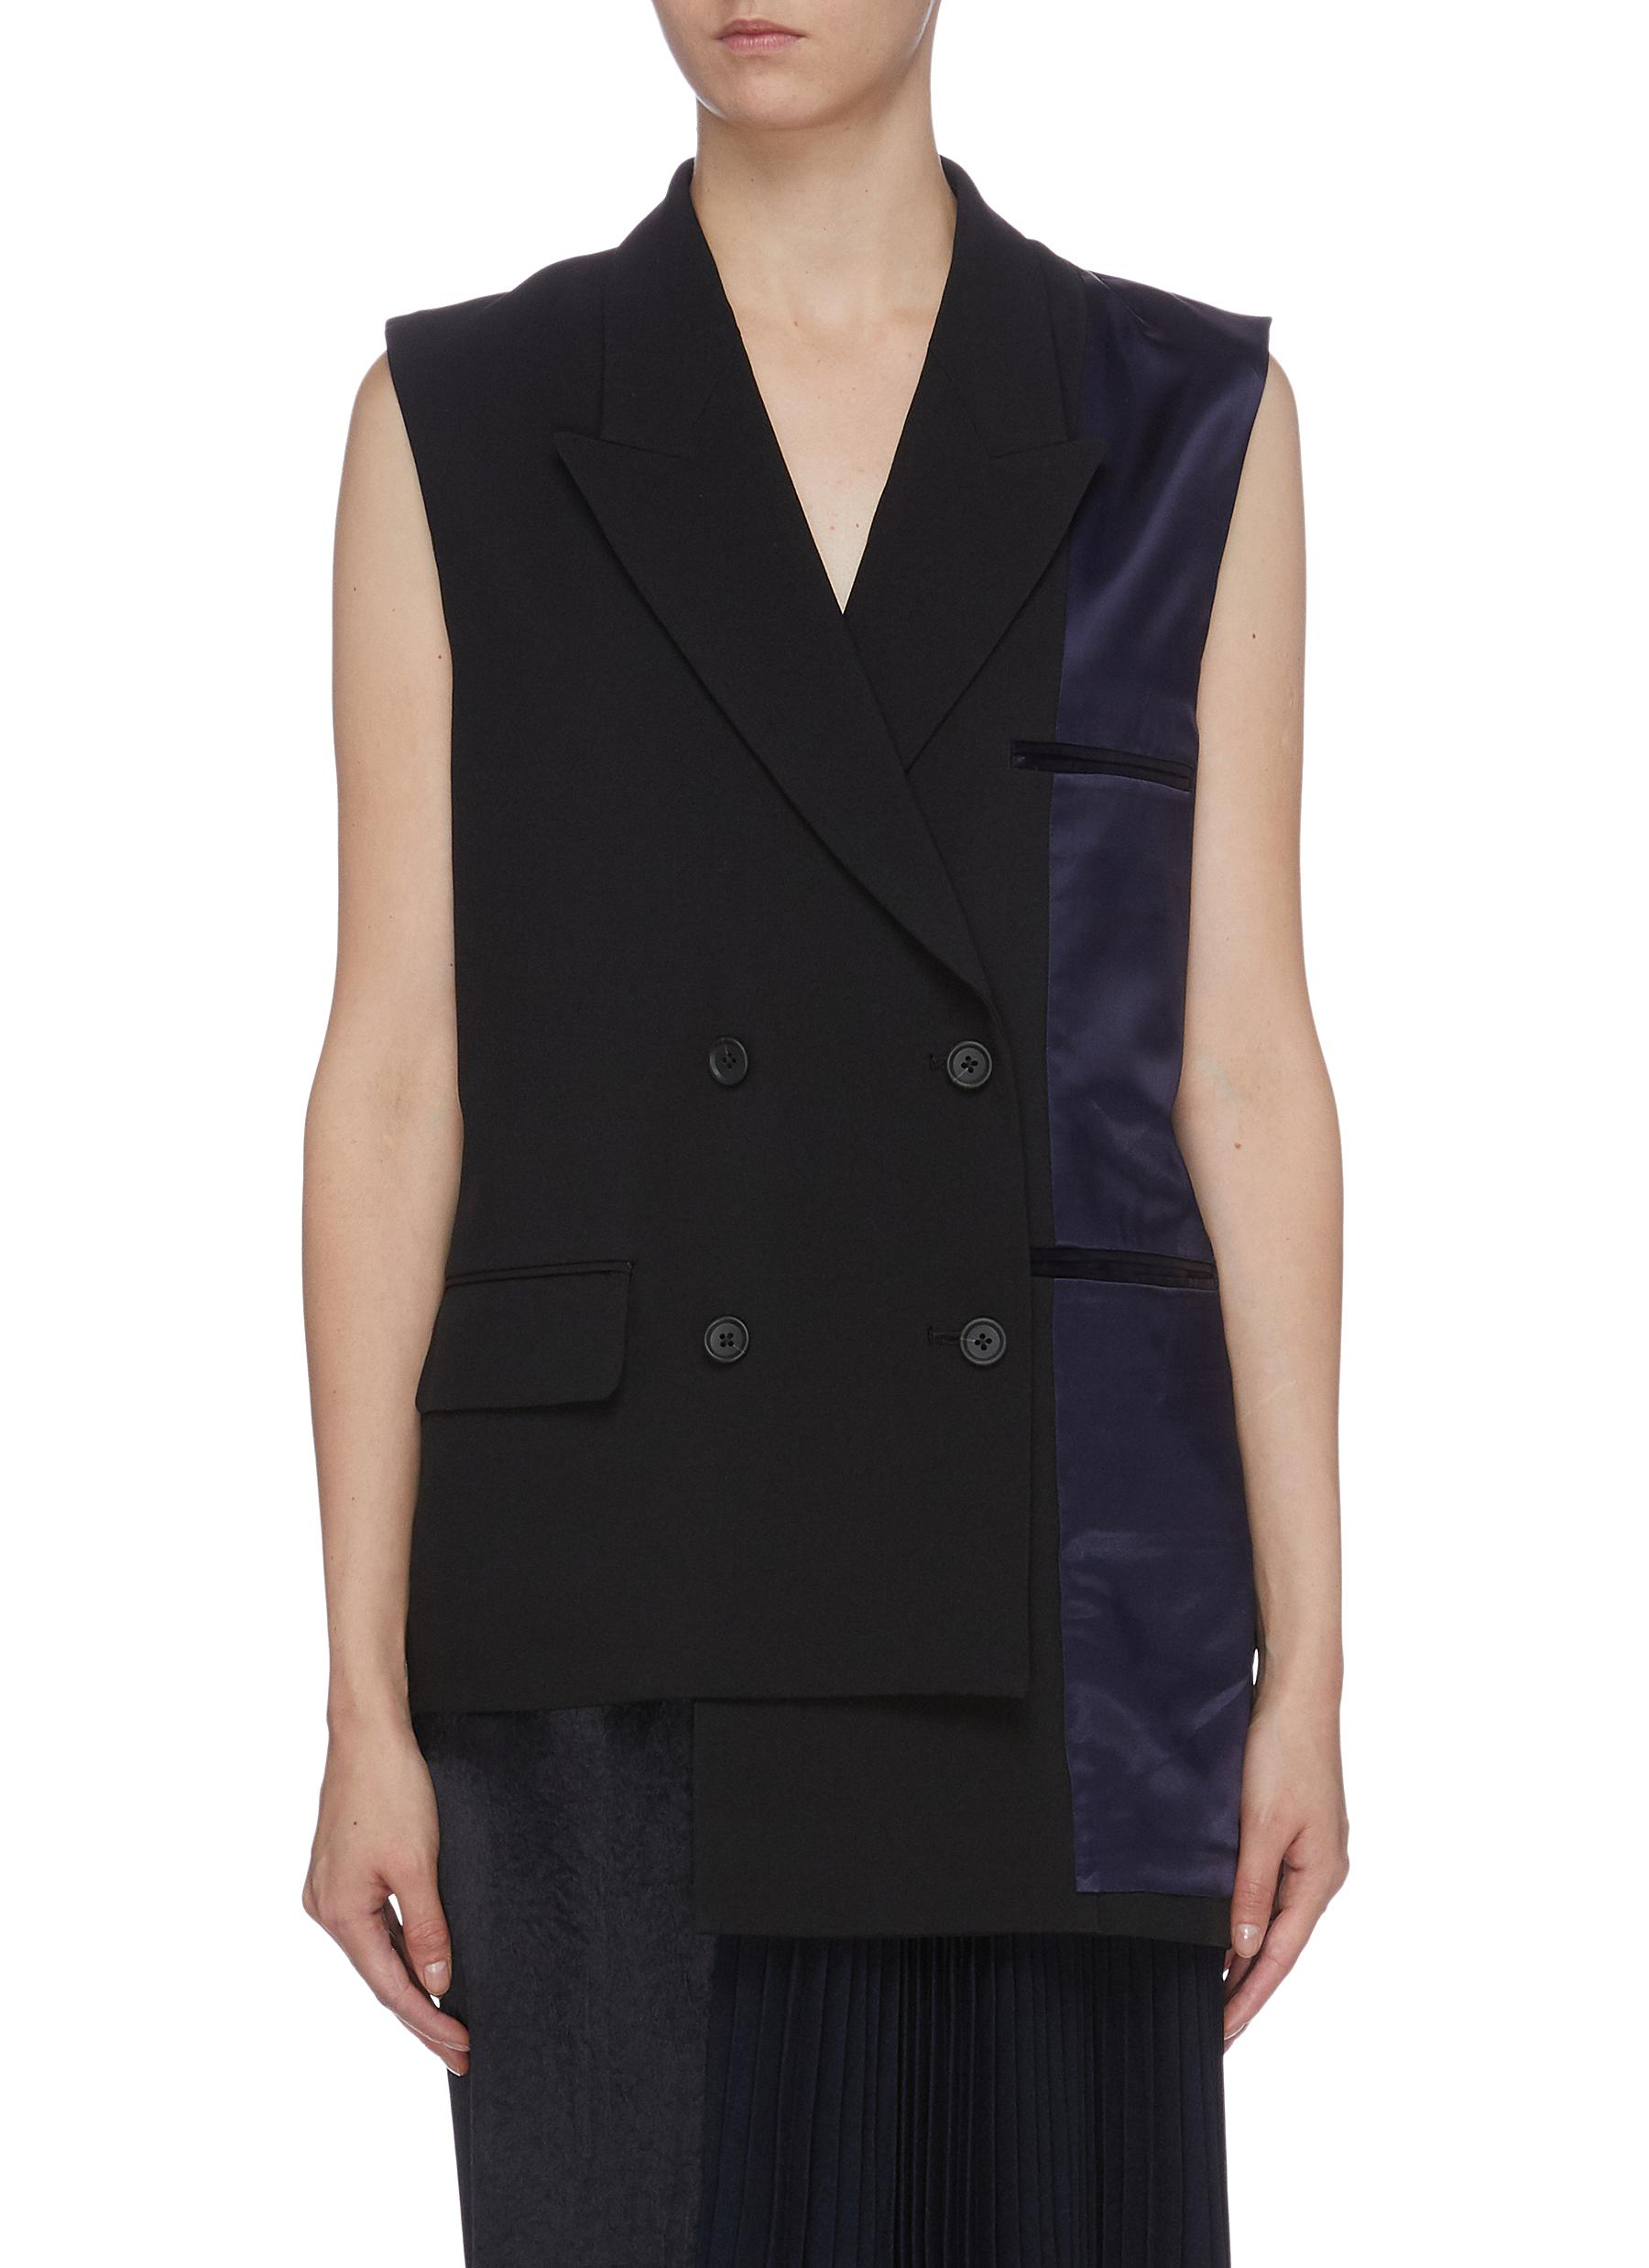 Reversible satin inside-out panel asymmetric double breasted gilet by The Keiji